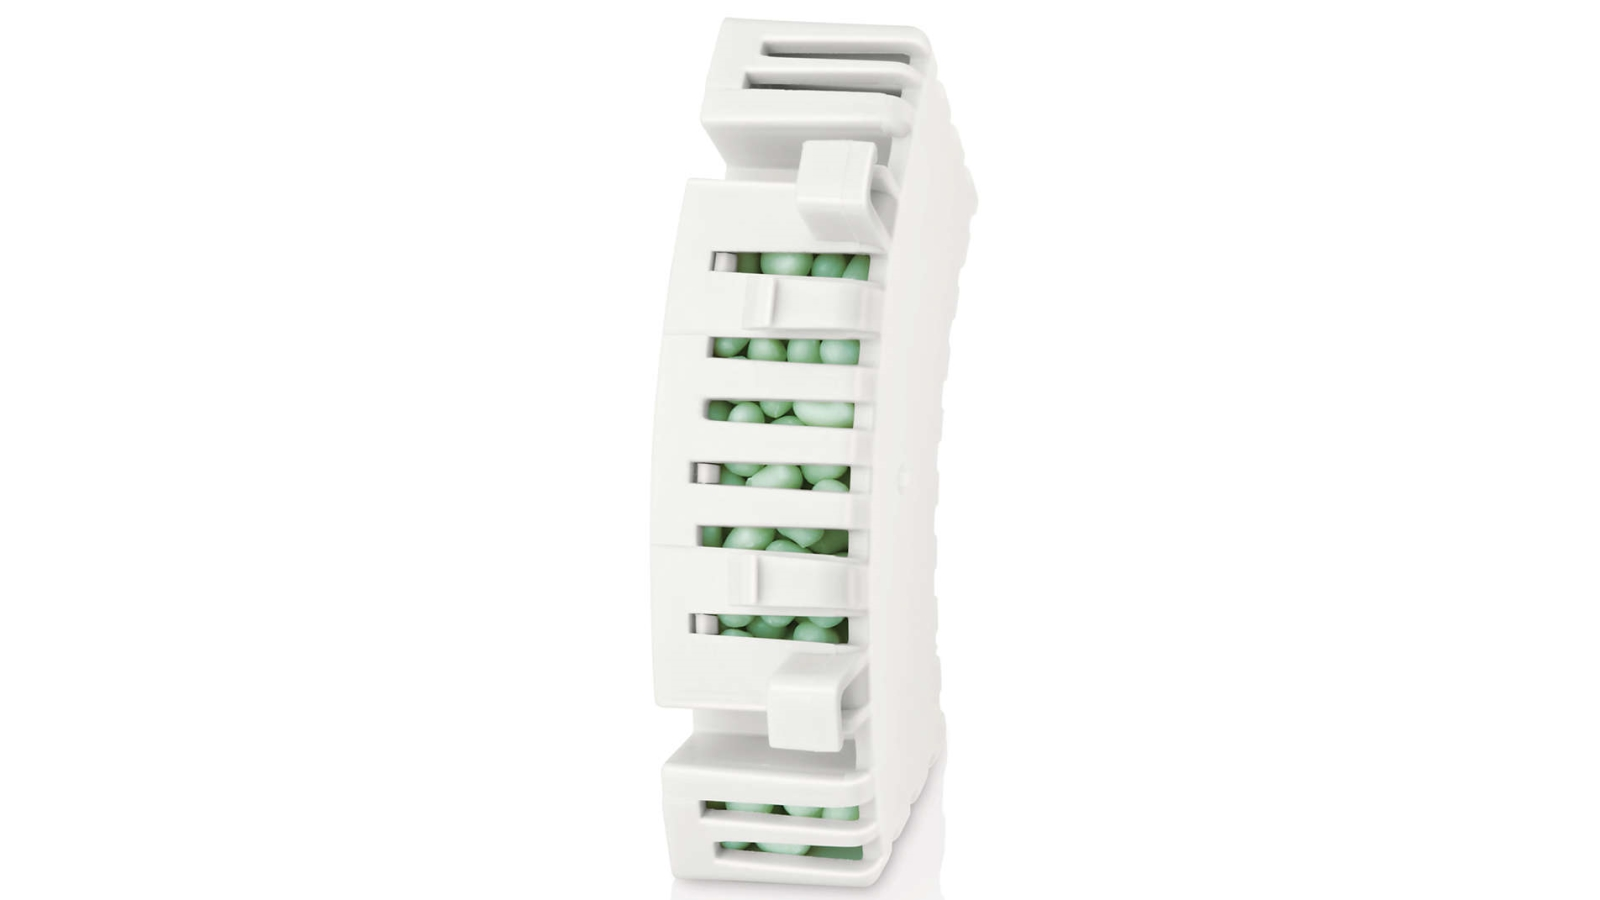 Image of Philips Antibacterial Cartridge for Humidifier